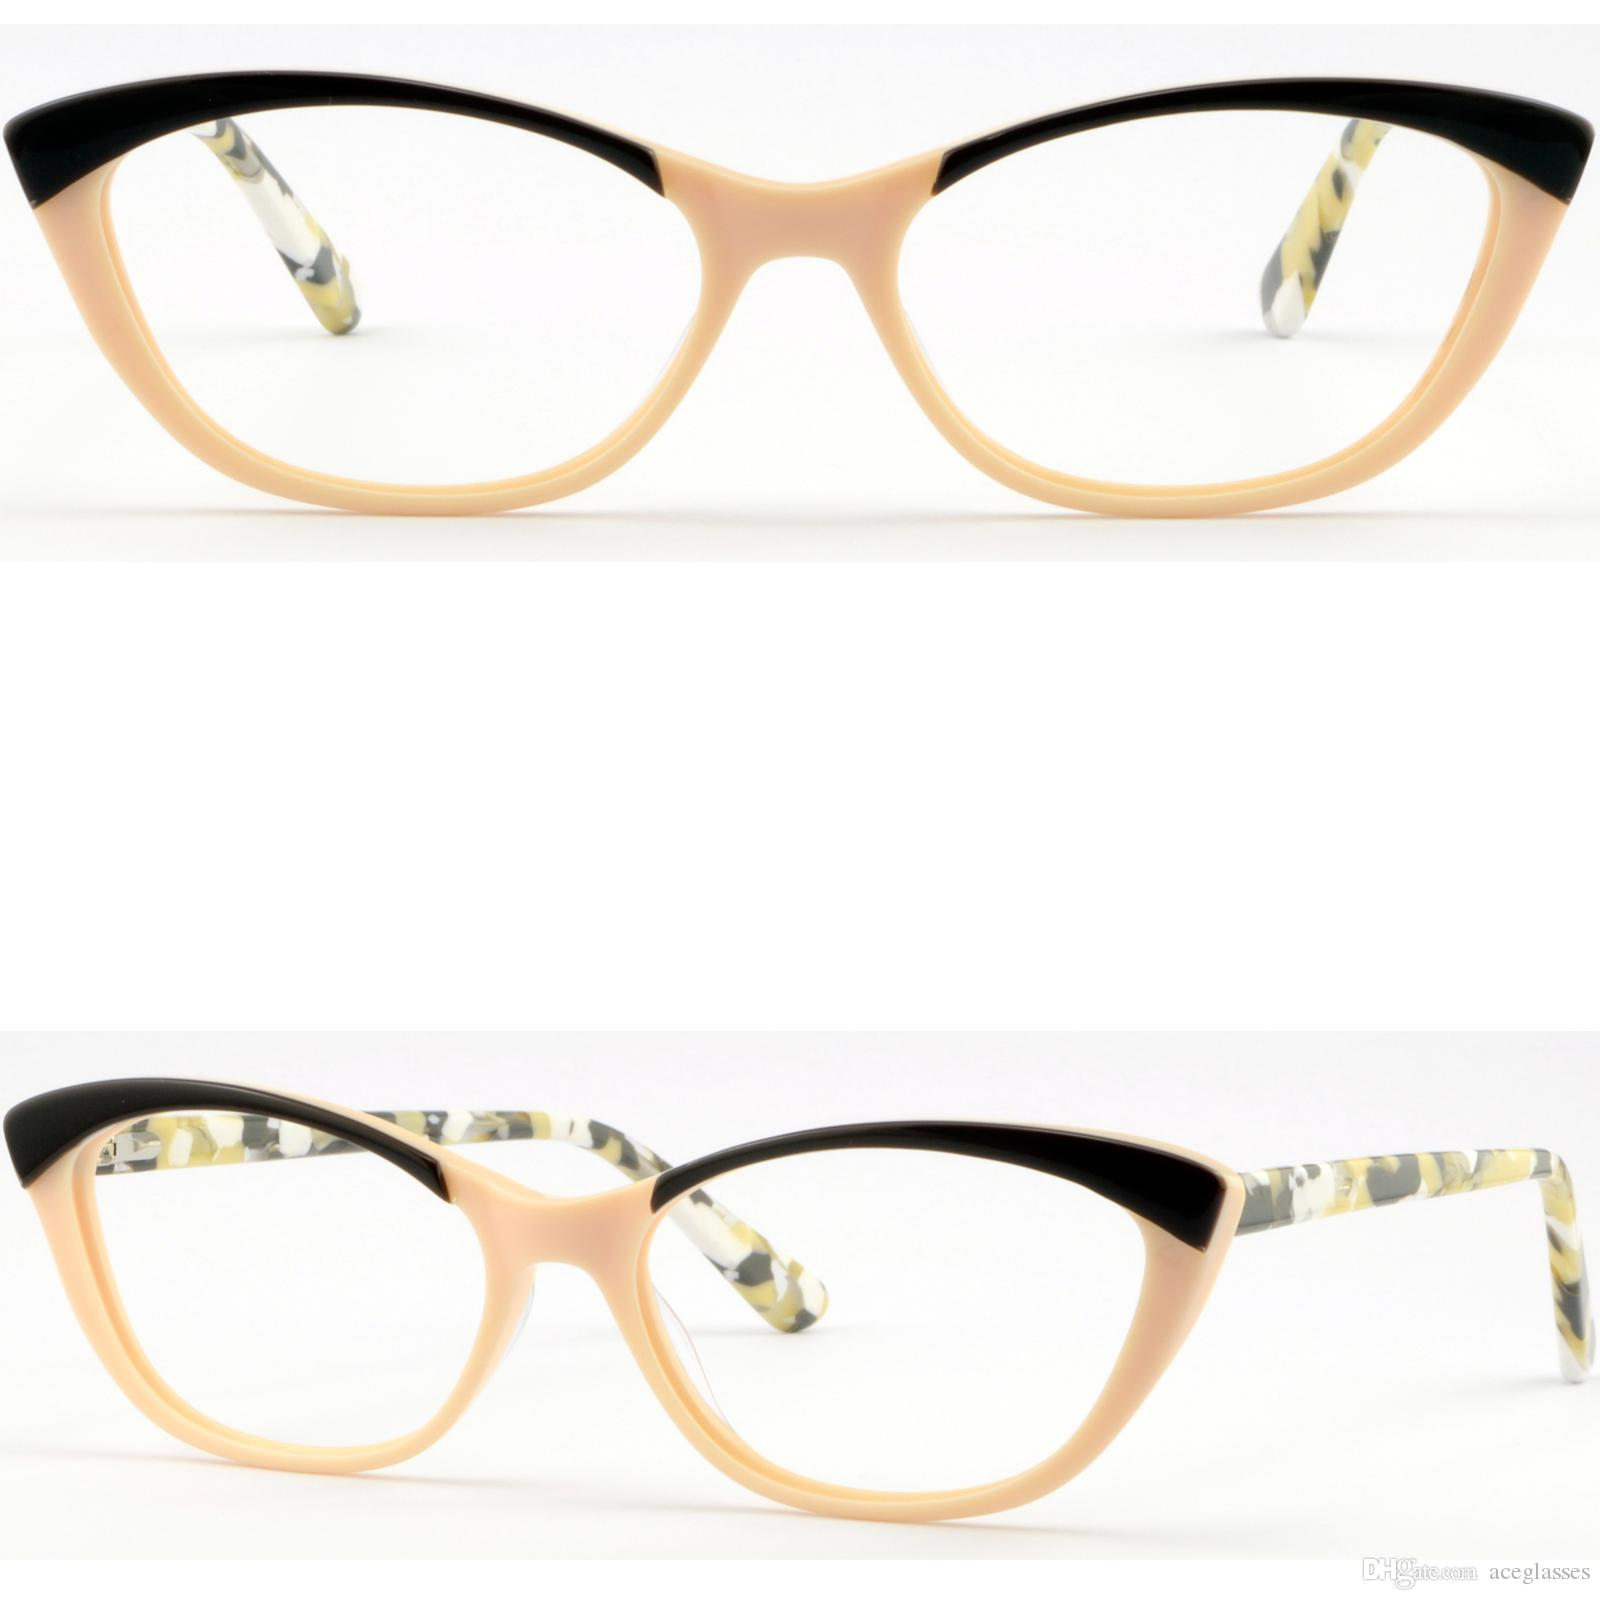 9b7a965e6b Full Rim Women s Cat Eye Frames Stylish Prescription Glasses RX ...